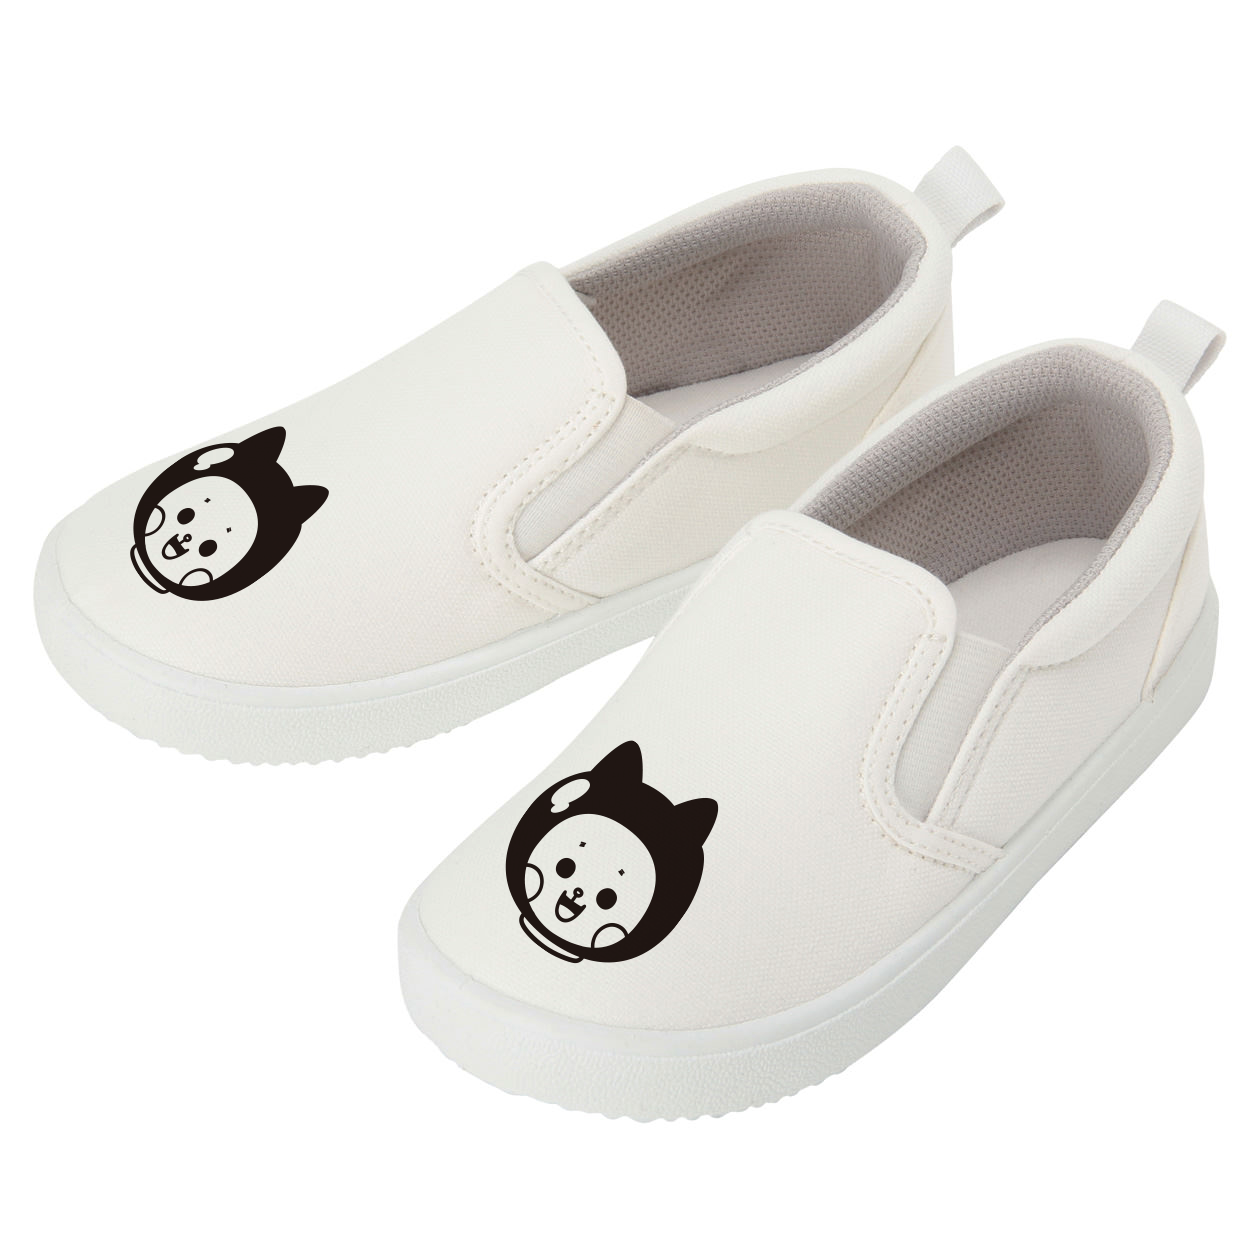 hamataro-shoes-c.png